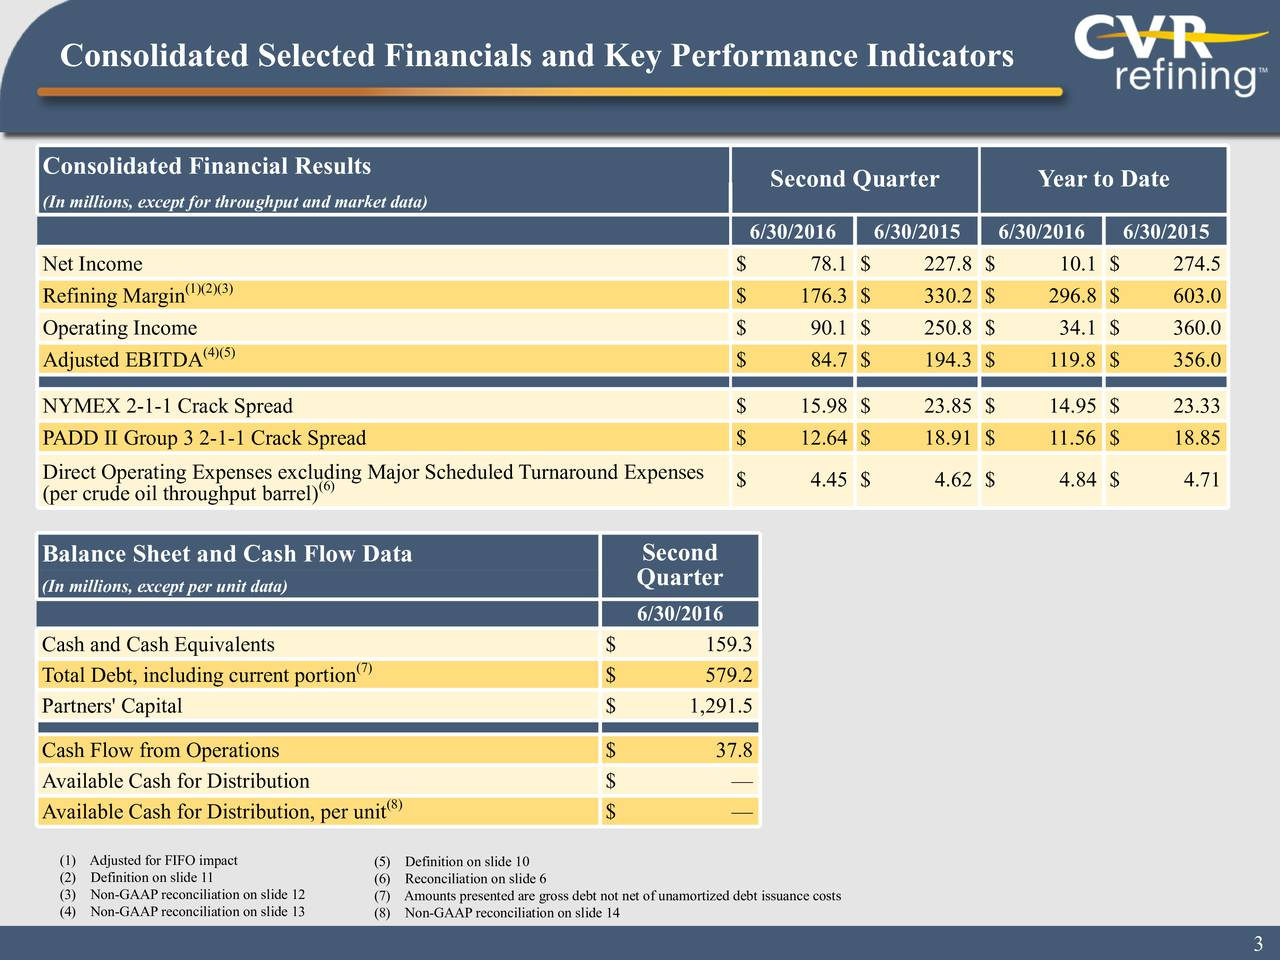 Consolidated Financial Results Second Quarter Year to Date (In millions, except for throughput and market data) 6/30/2016 6/30/2015 6/30/2016 6/30/2015 Net Income $ 78.1 $ 227.8 $ 10.1 $ 274.5 Refining Margin(1)(2)(3) $ 176.3 $ 330.2 $ 296.8 $ 603.0 Operating Income $ 90.1 $ 250.8 $ 34.1 $ 360.0 (4)(5) Adjusted EBITDA $ 84.7 $ 194.3 $ 119.8 $ 356.0 NYMEX 2-1-1 Crack Spread $ 15.98 $ 23.85 $ 14.95 $ 23.33 PADD II Group 3 2-1-1 Crack Spread $ 12.64 $ 18.91 $ 11.56 $ 18.85 Direct Operating Expenses excl(6)ng Major Scheduled Turnaround Expenses $ 4.45 $ 4.62 $ 4.84 $ 4.71 (per crude oil throughput barrel) Balance Sheet and Cash Flow Data Second (In millions, except per unit data) Quarter 6/30/2016 Cash and Cash Equivalents $ 159.3 (7) Total Debt, including current portion $ 579.2 Partners' Capital $ 1,291.5 Cash Flow from Operations $ 37.8 Available Cash for Distribution $ Available Cash for Distribution, per unit $ (1) Adjusted for FIFO impact (2) Definition on slide 11 (6) Reconciliation on slide 6 (3) Non-GAAP reconciliation on sli(7) Amounts presented are gross debt not net of unamortized debt issuance costs (4) Non-GAAP reconciliation on sli(8) Non-GAAP reconciliation on slide 14